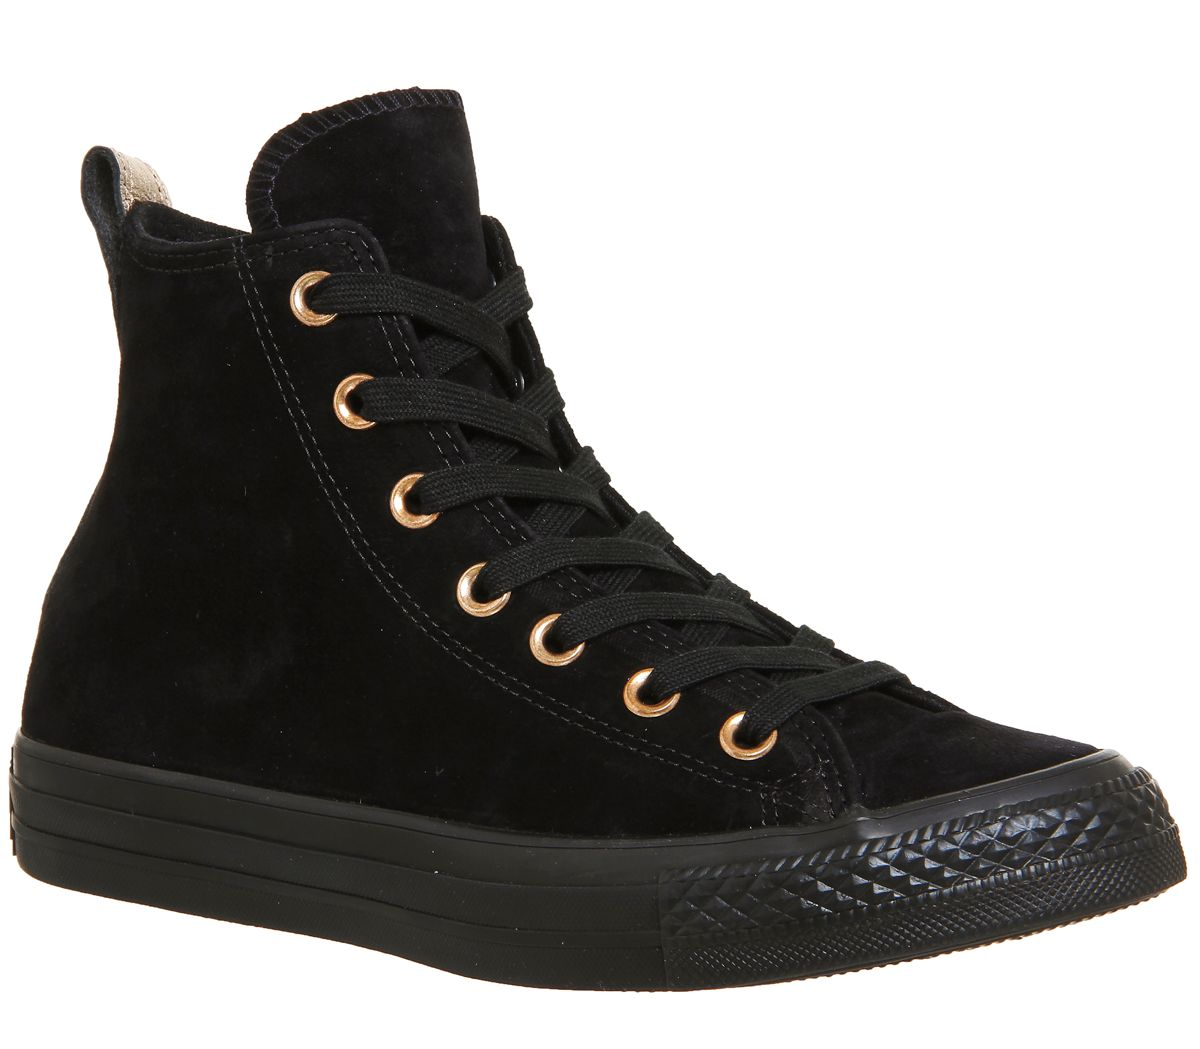 Converse Converse All Star Hi Leather Trainers, Black Suede